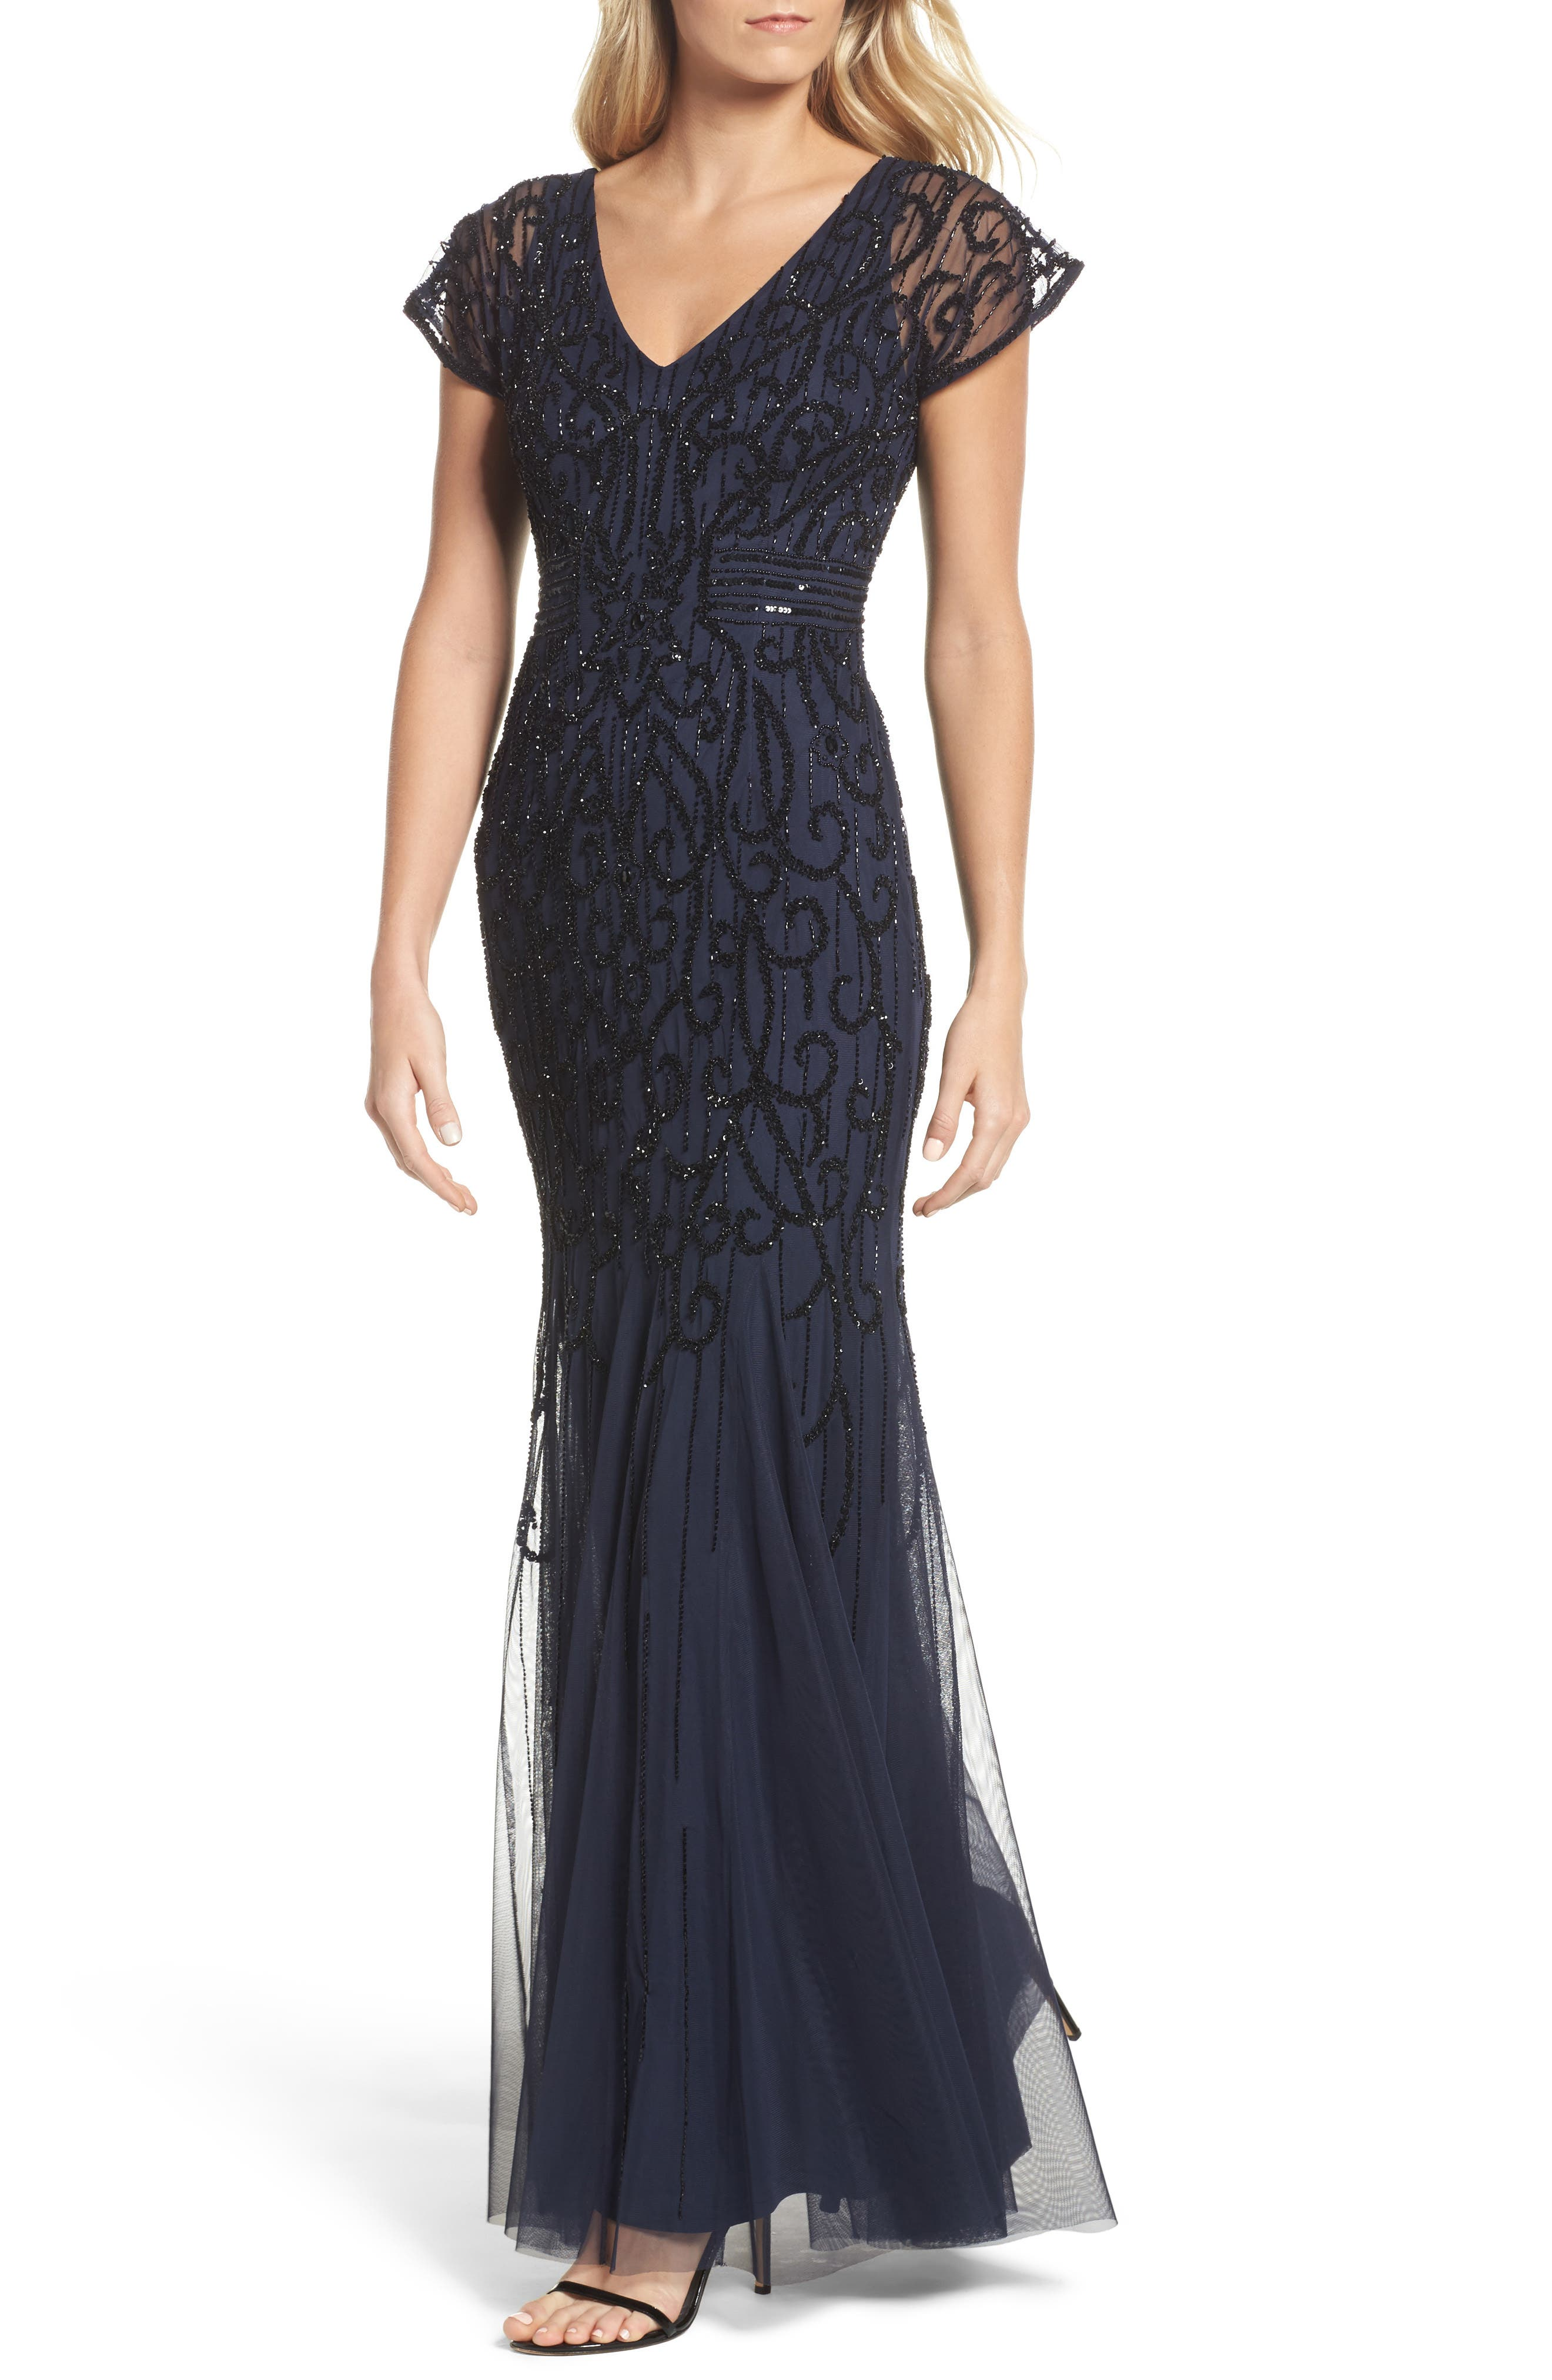 Main Image - Adrianna Papell Beaded Mesh Godet Gown